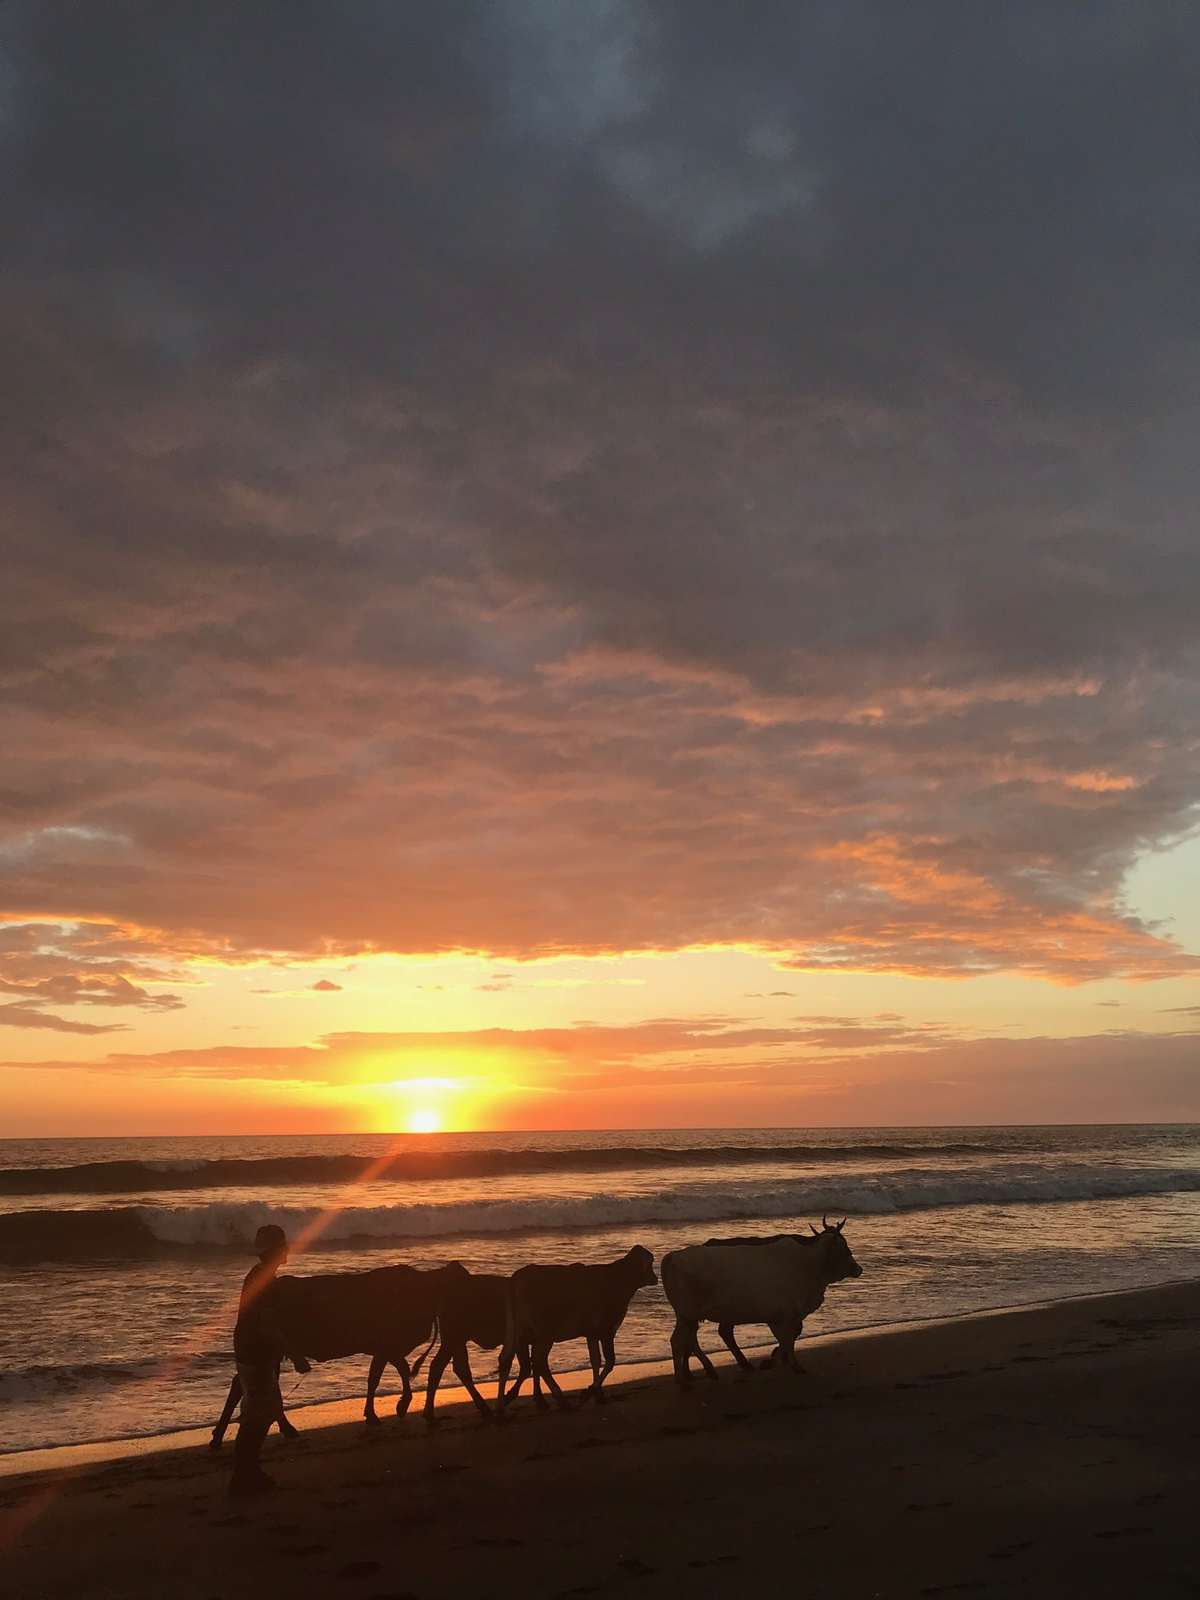 Cows on a beach.